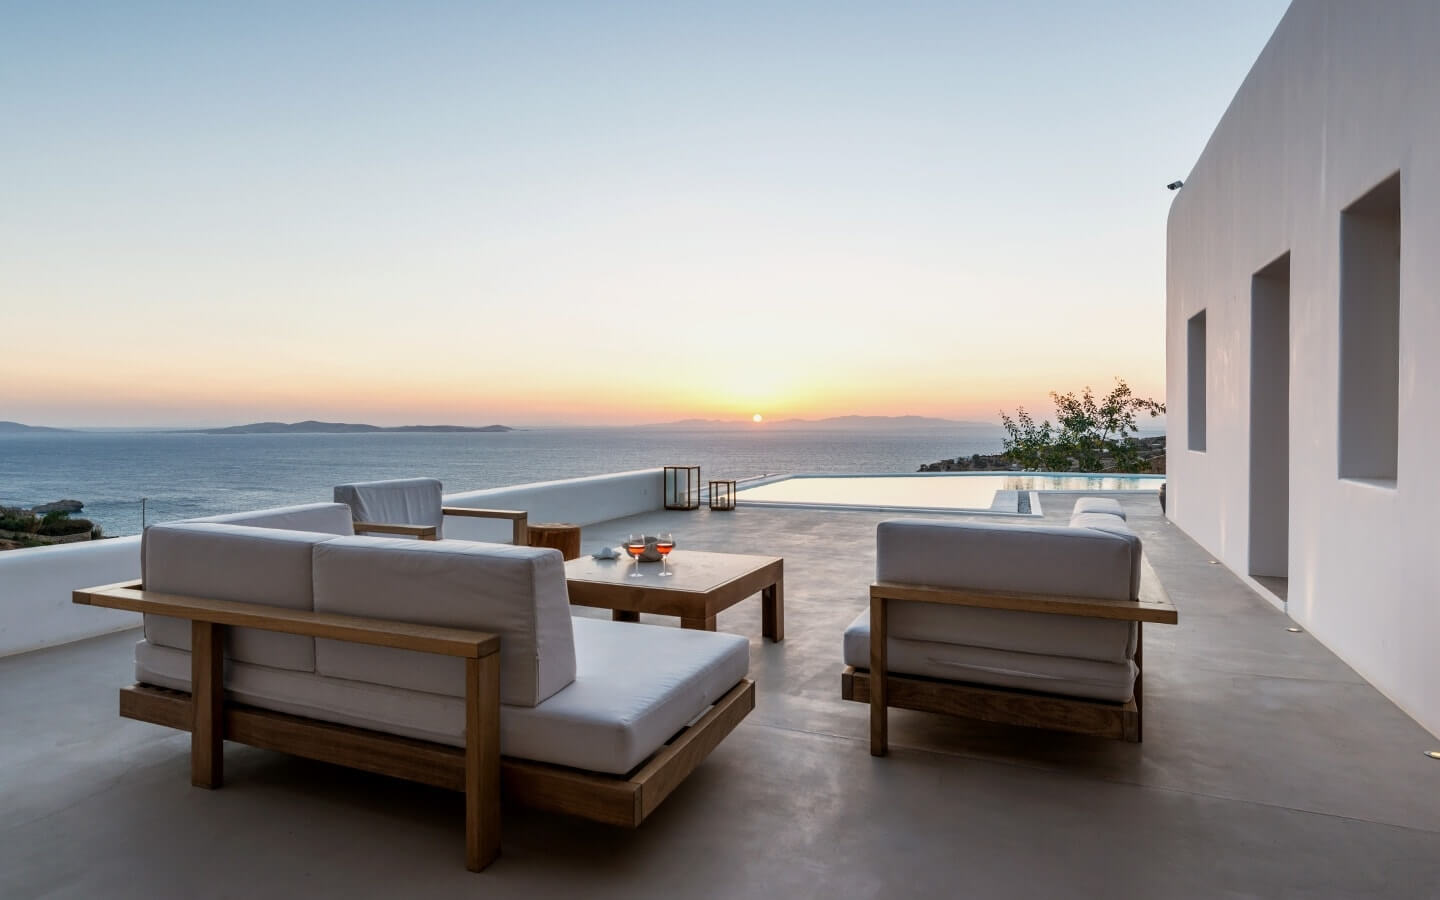 Outdoor sitting area overlooking the sea at Just White VIP Villas Mykonos.